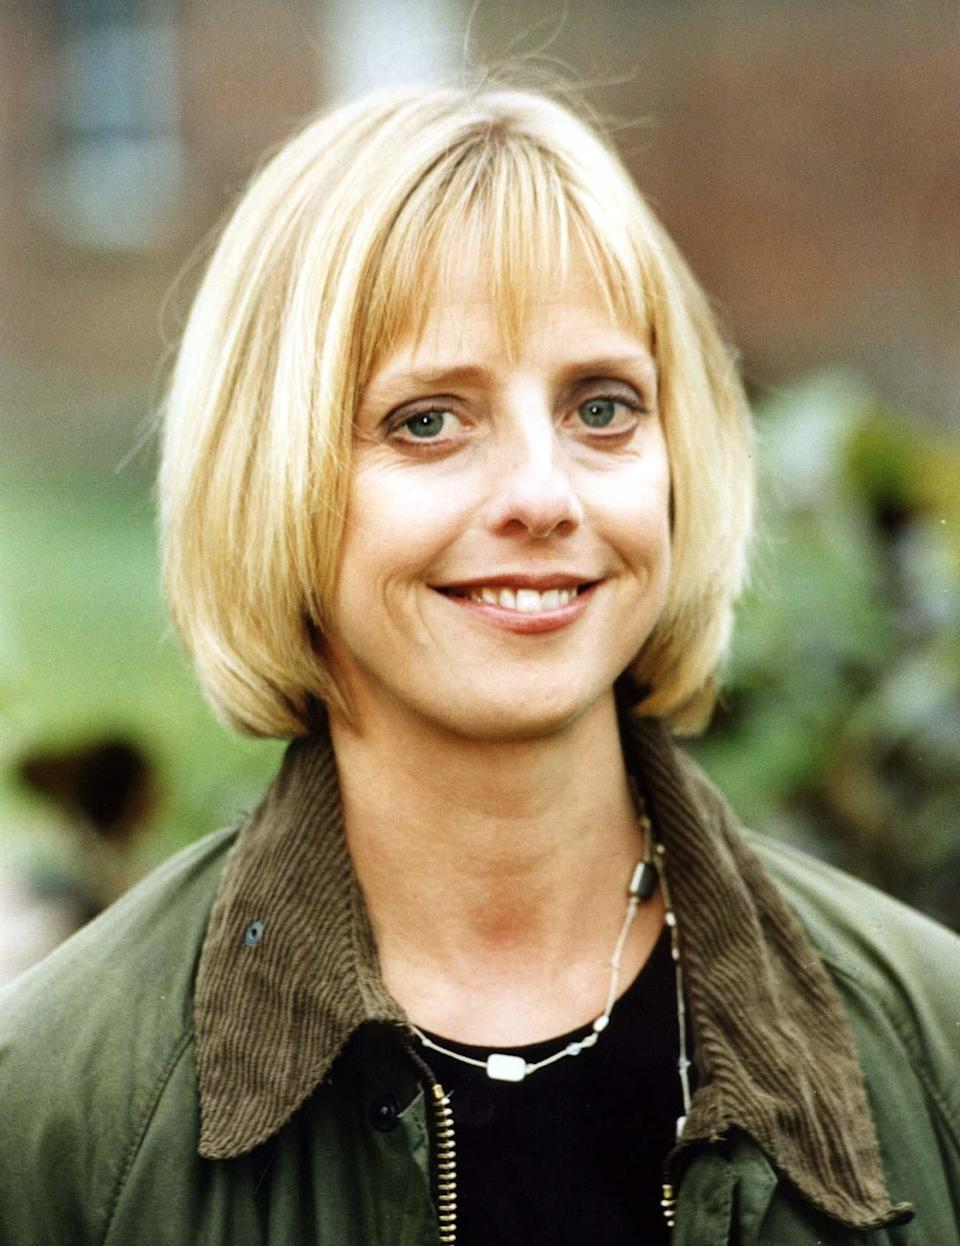 """<strong>Emma Chambers</strong><br /><strong>Actress (b. 1964)</strong><br /><br />The 53-year-old star was best-known for her role as Alice Tinker in '<a href=""""http://www.imdb.com/title/tt0108981/"""" target=""""_blank"""">The Vicar of Dibley</a>between 1994 and 2007. She also starred in<a href=""""http://www.imdb.com/title/tt0125439/"""" target=""""_blank"""">Notting Hill</a>and the TV adaptation of Martin Chuzzlewit."""